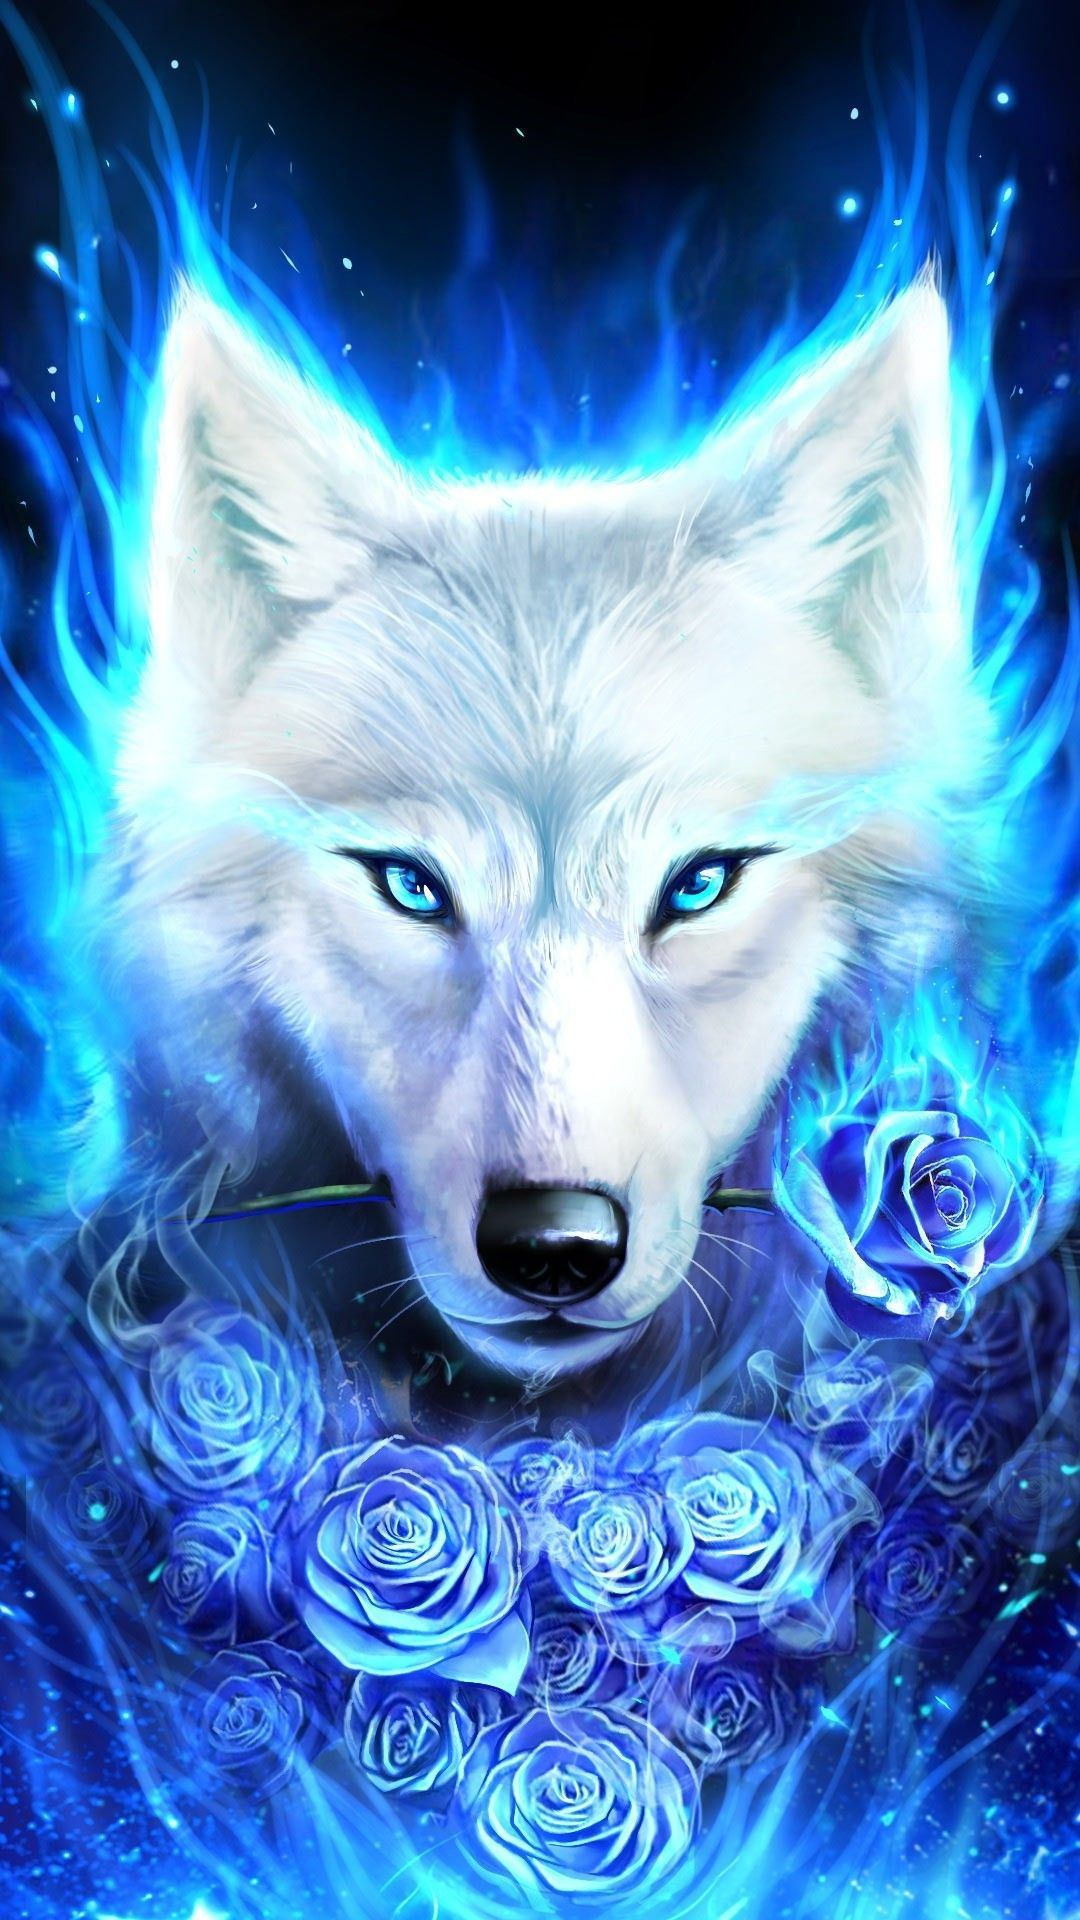 Epic Wolf Wallpapers Background For Iphone Wallpaper On Hupages Com If You Like It Dont Forget Save It Or Repin I Wolf Spirit Animal Fantasy Wolf Wolf Artwork